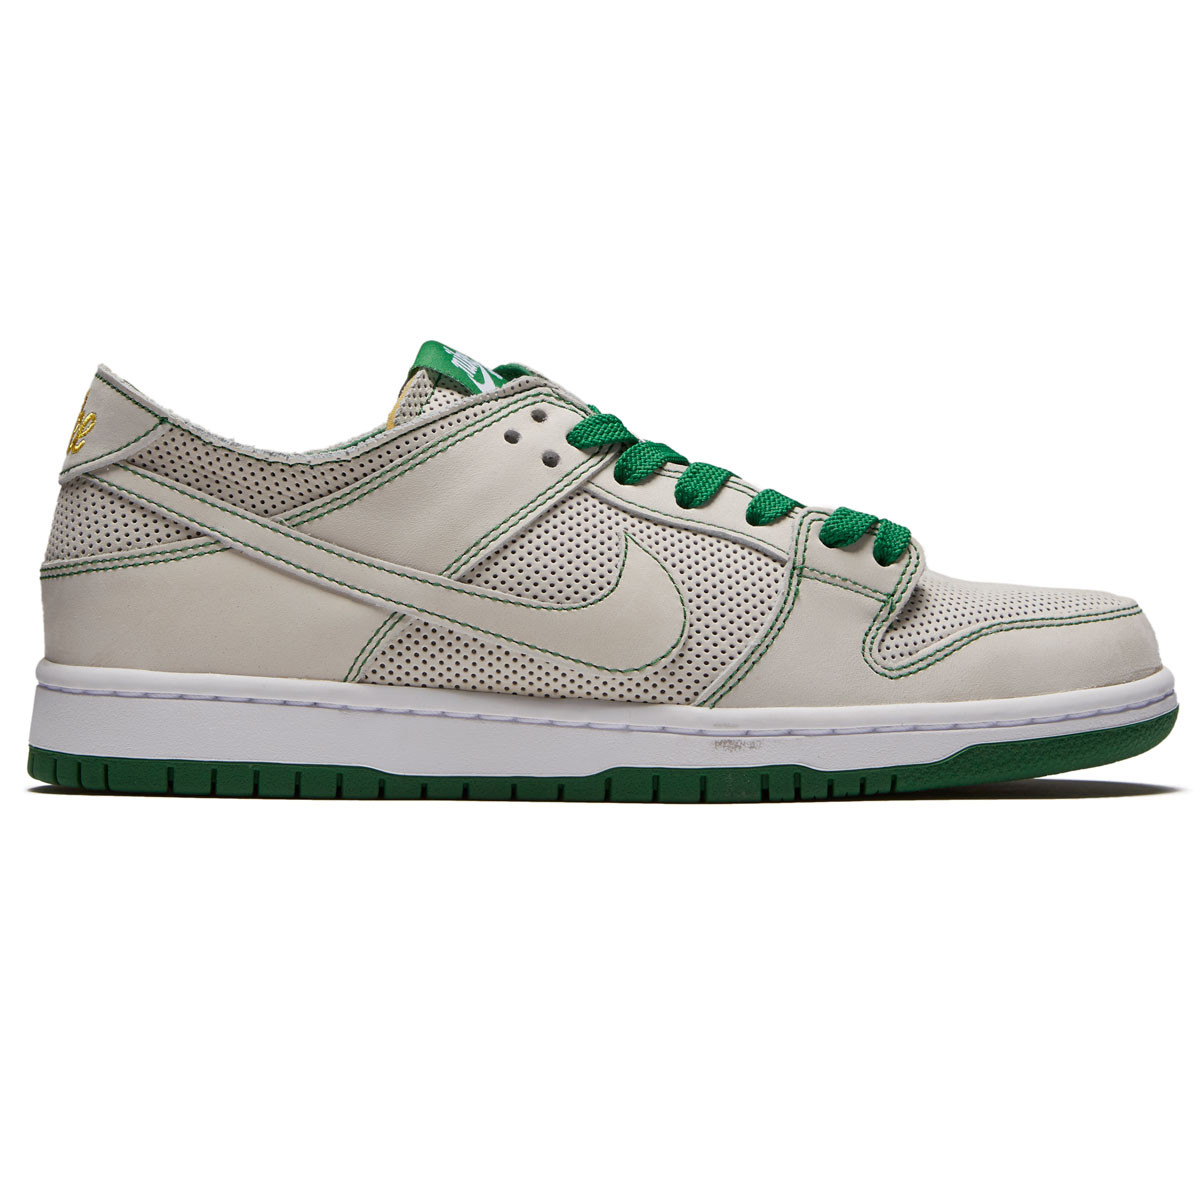 reputable site 997f2 ce7ff Nike SB Zoom Dunk Low Pro Decon Ishod Wair Shoes